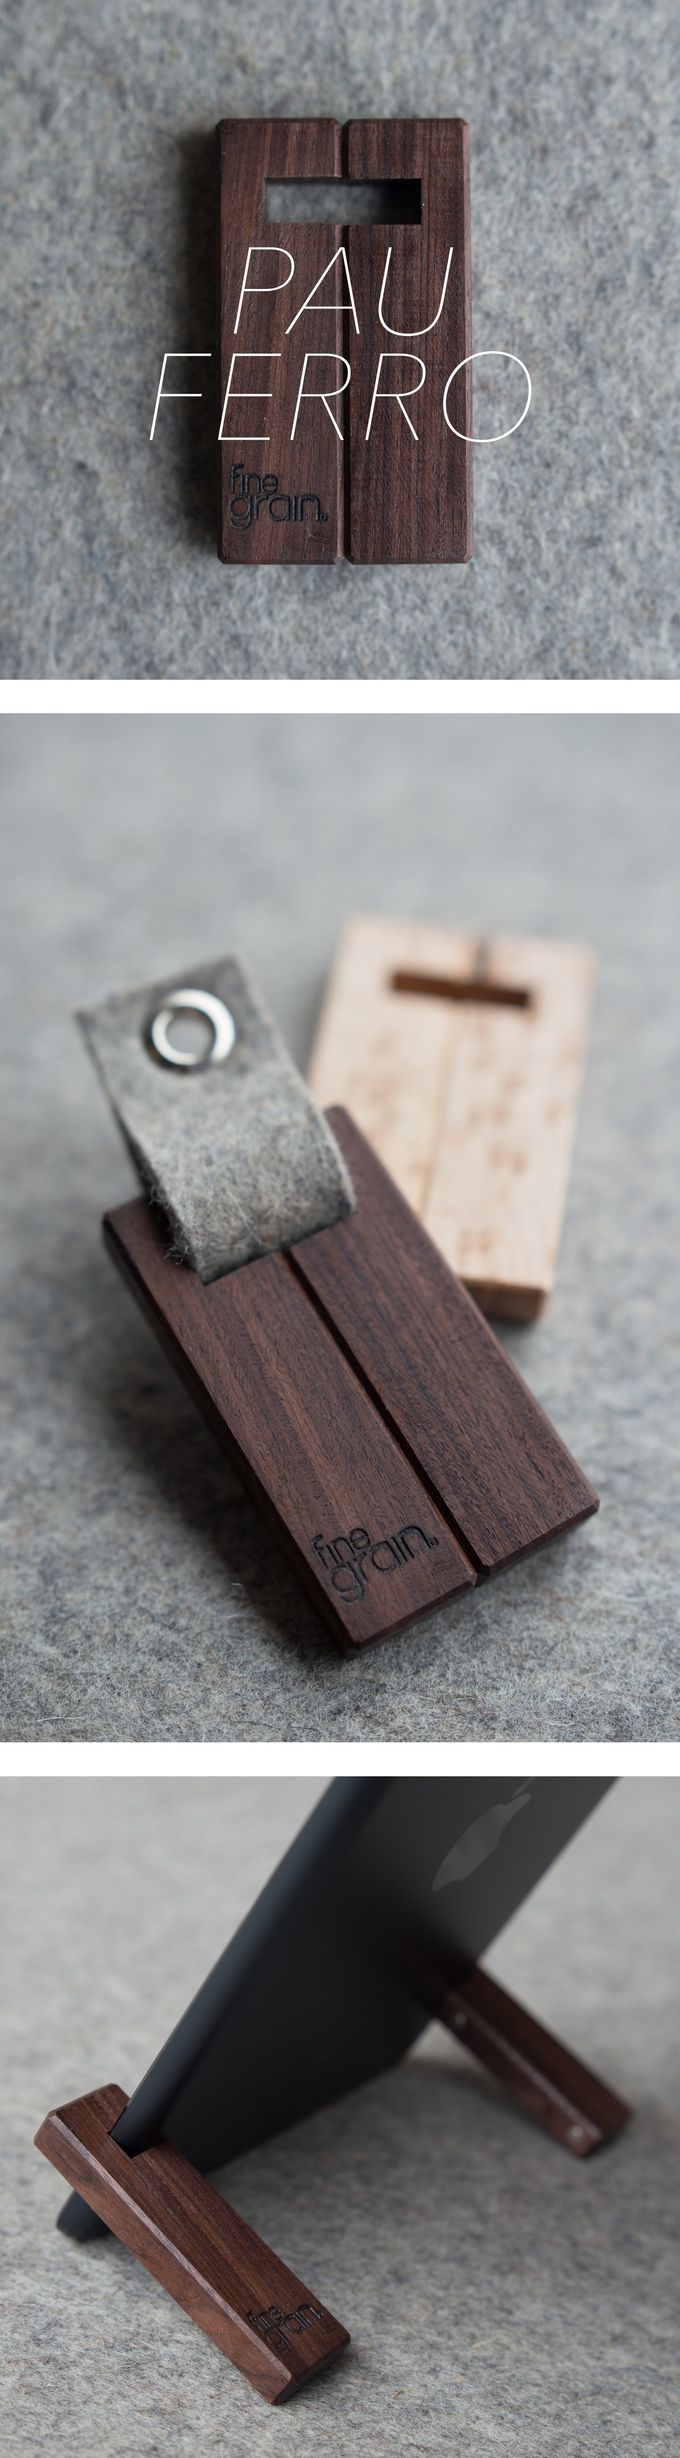 Minimalist Wood iPad Stands. Handcrafted in the USA.